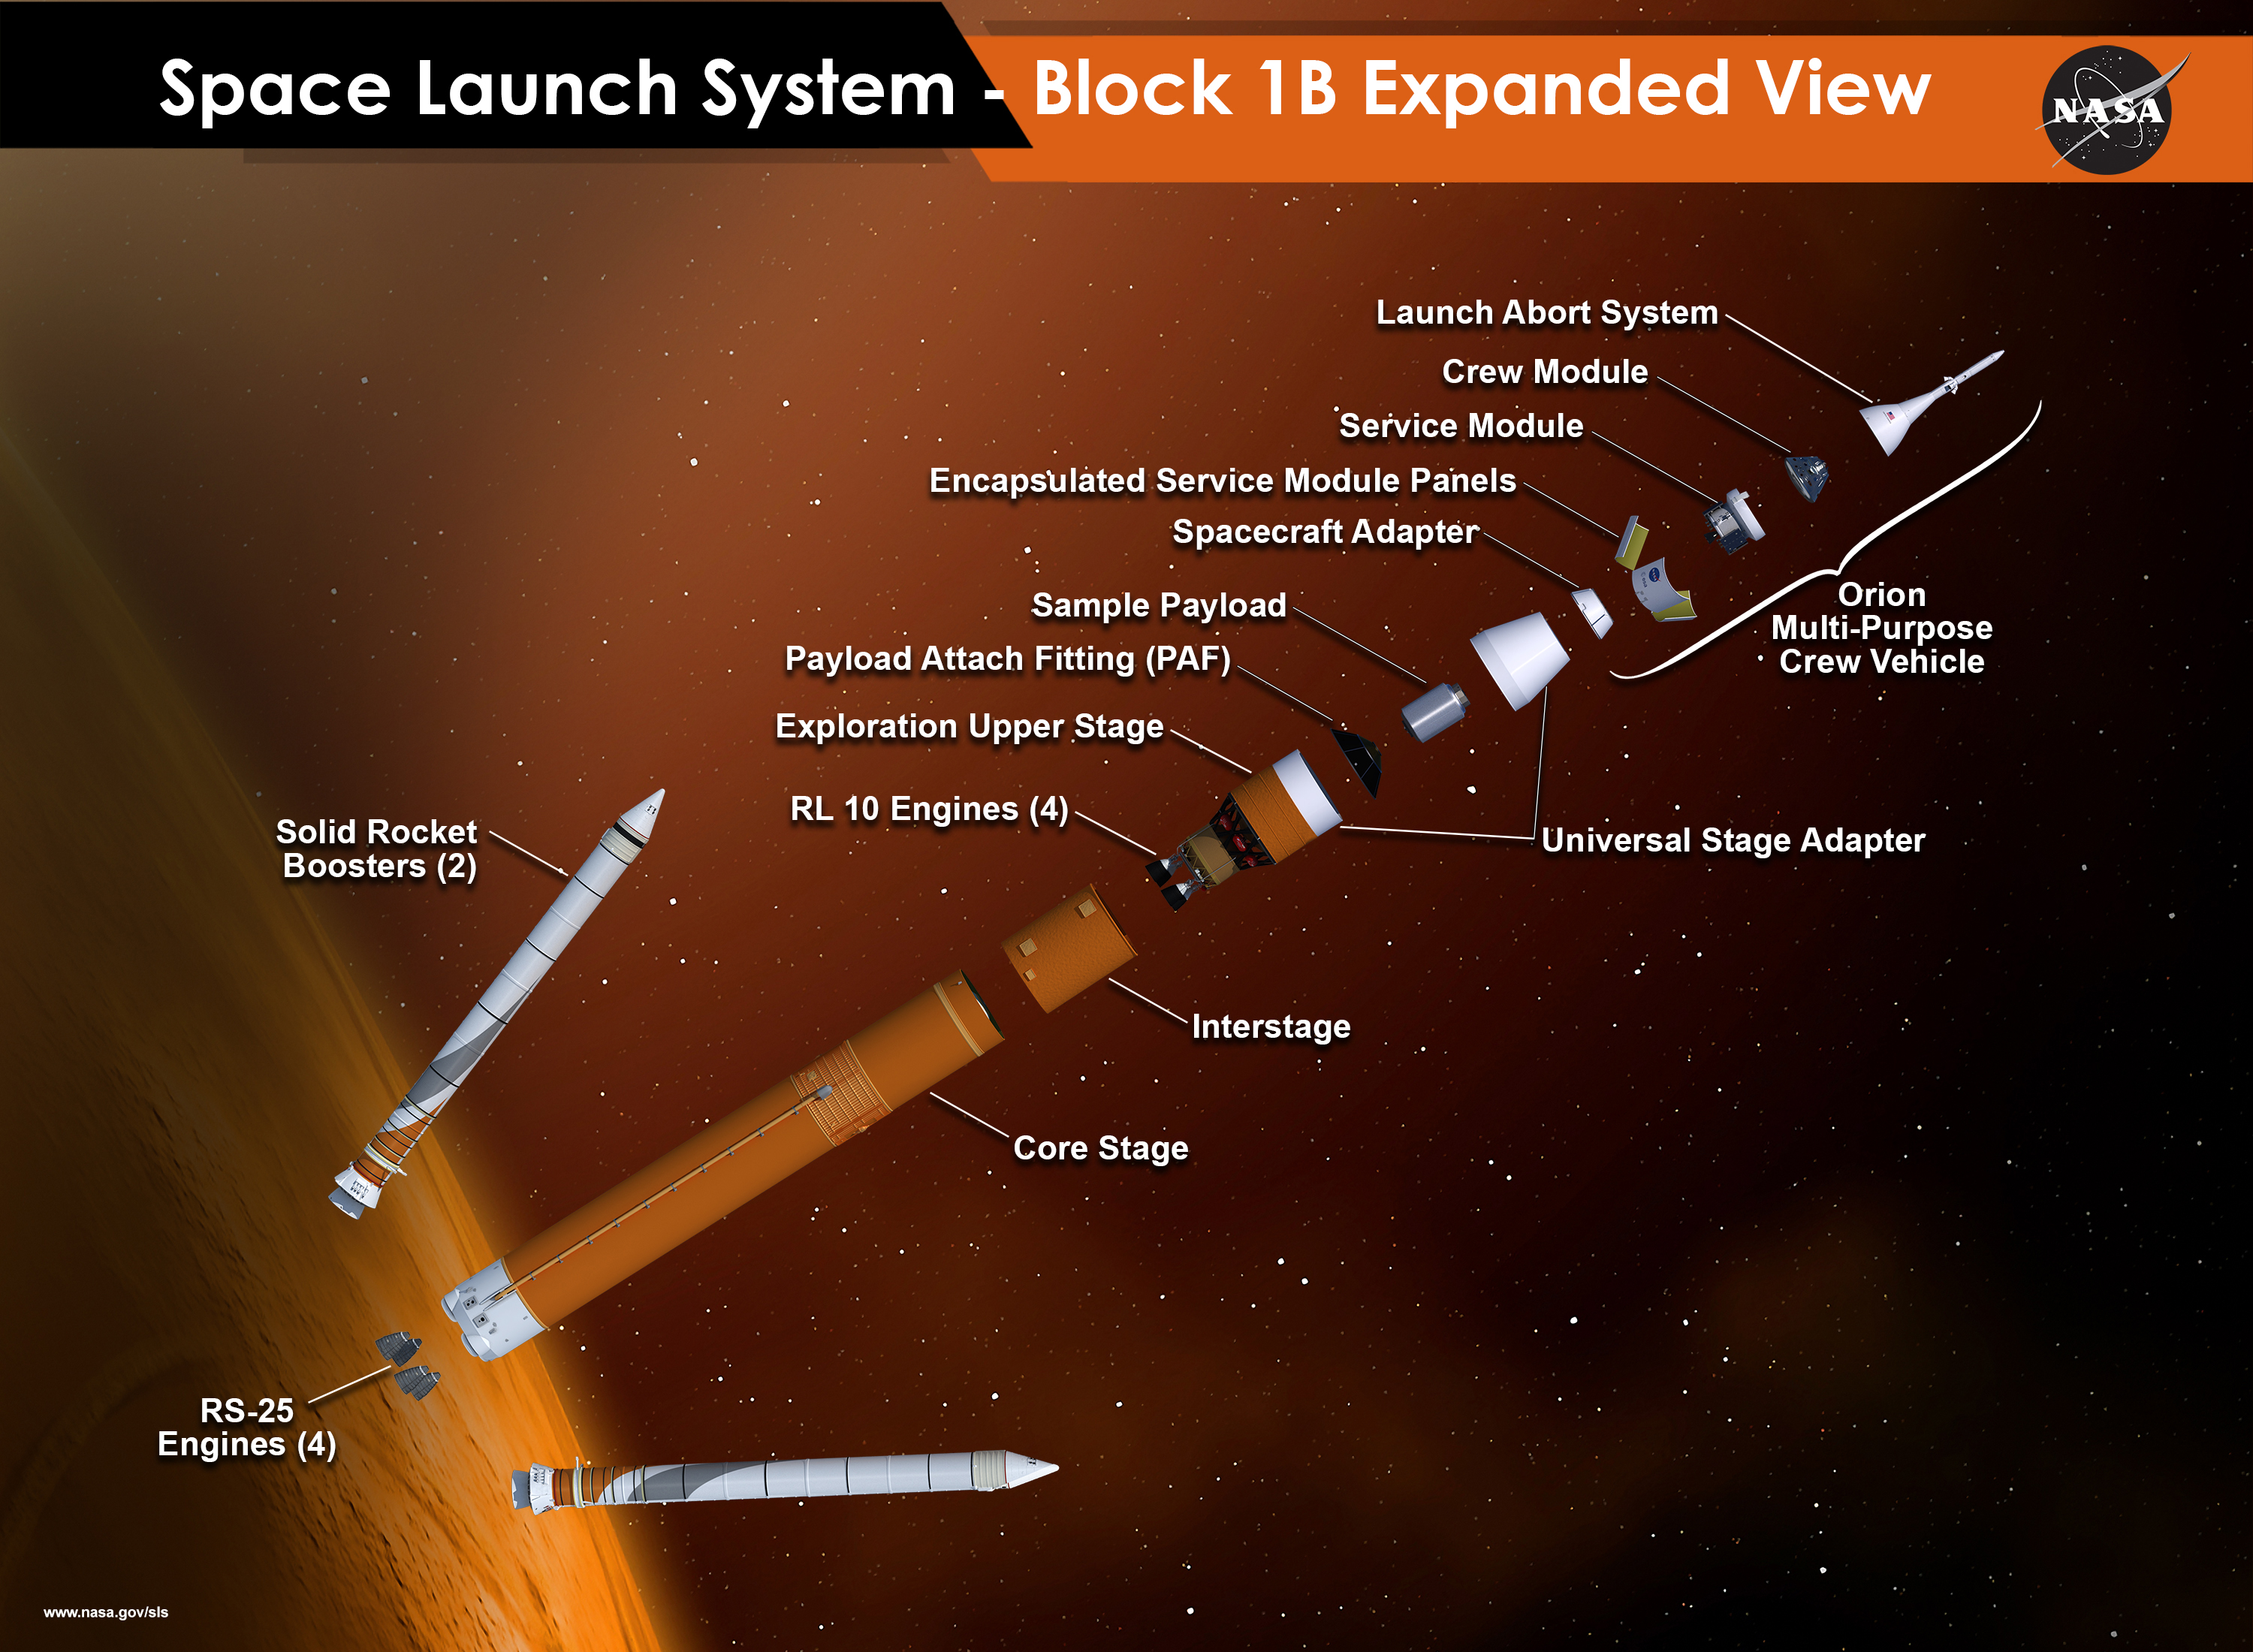 October 26 2016 Nasa Ground Is A Different Process From Panel To Attached Thumbnails An Expanded View Of The Block Ib Configuration Nasas Space Launch System Rocket Including